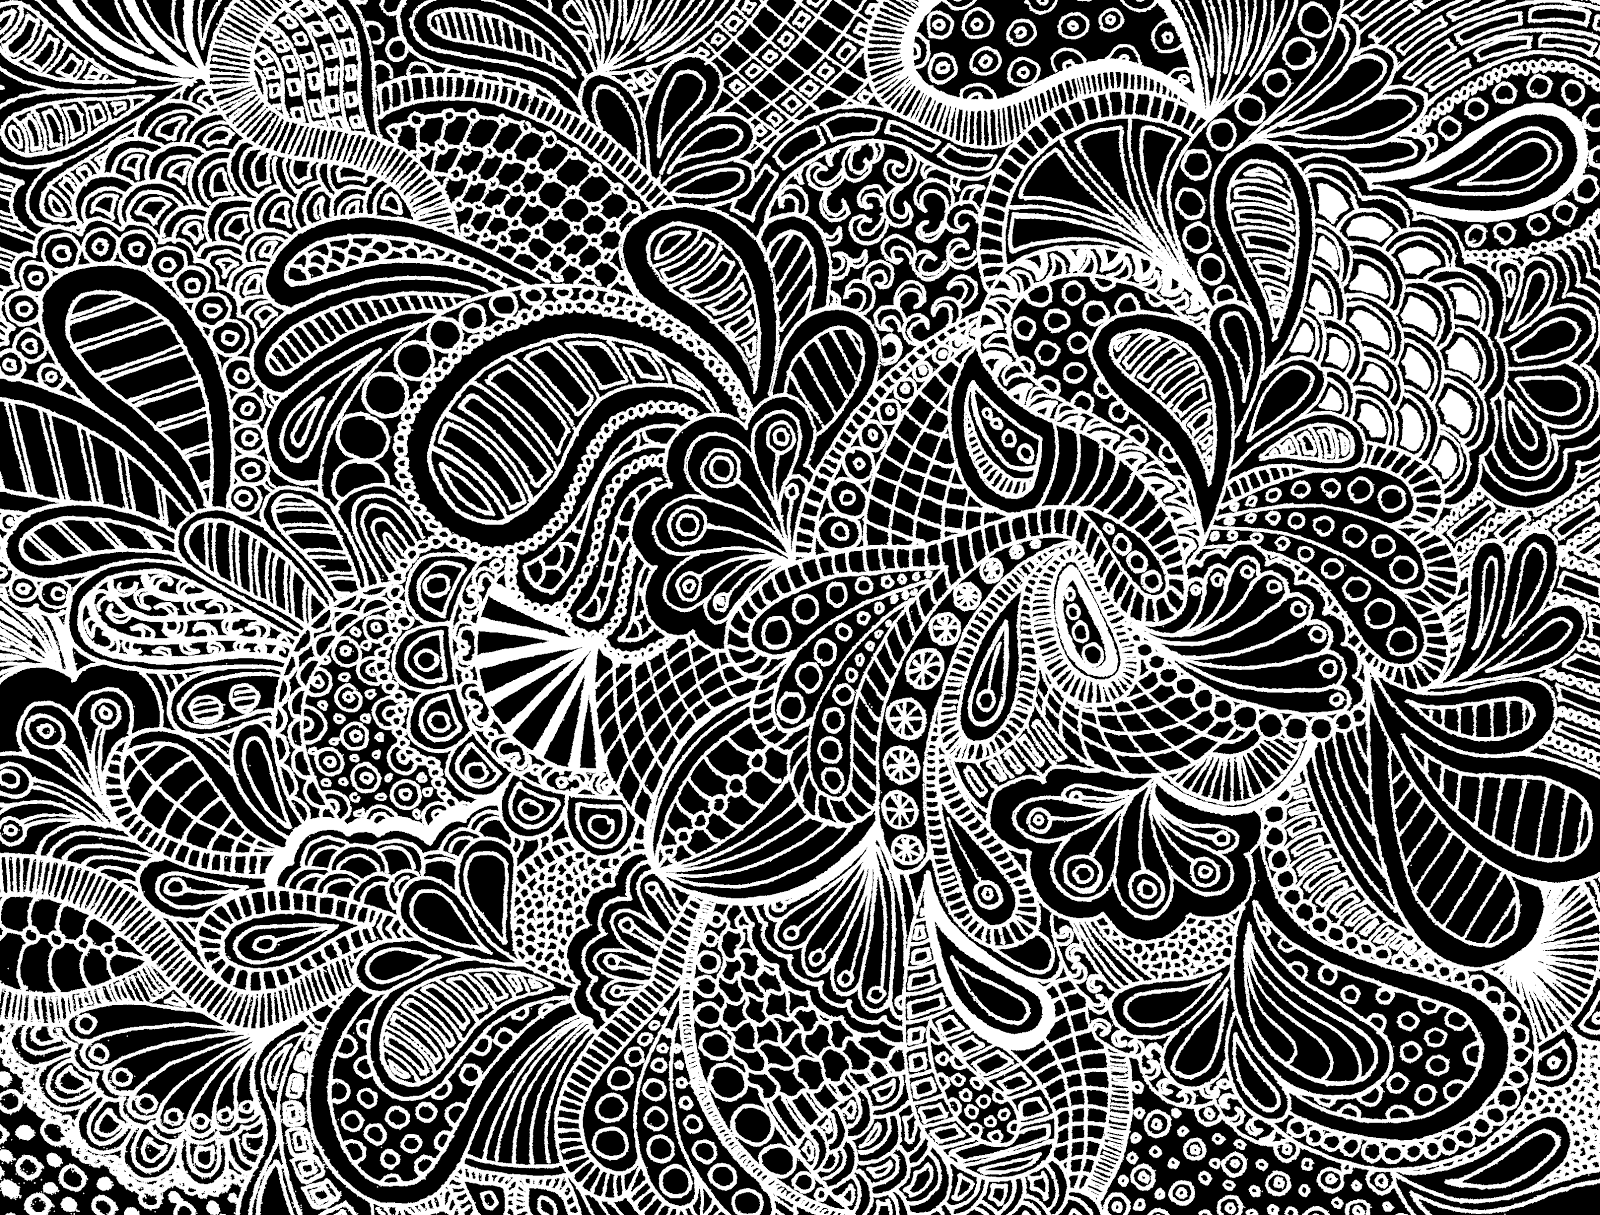 My Huge ZenDoodle